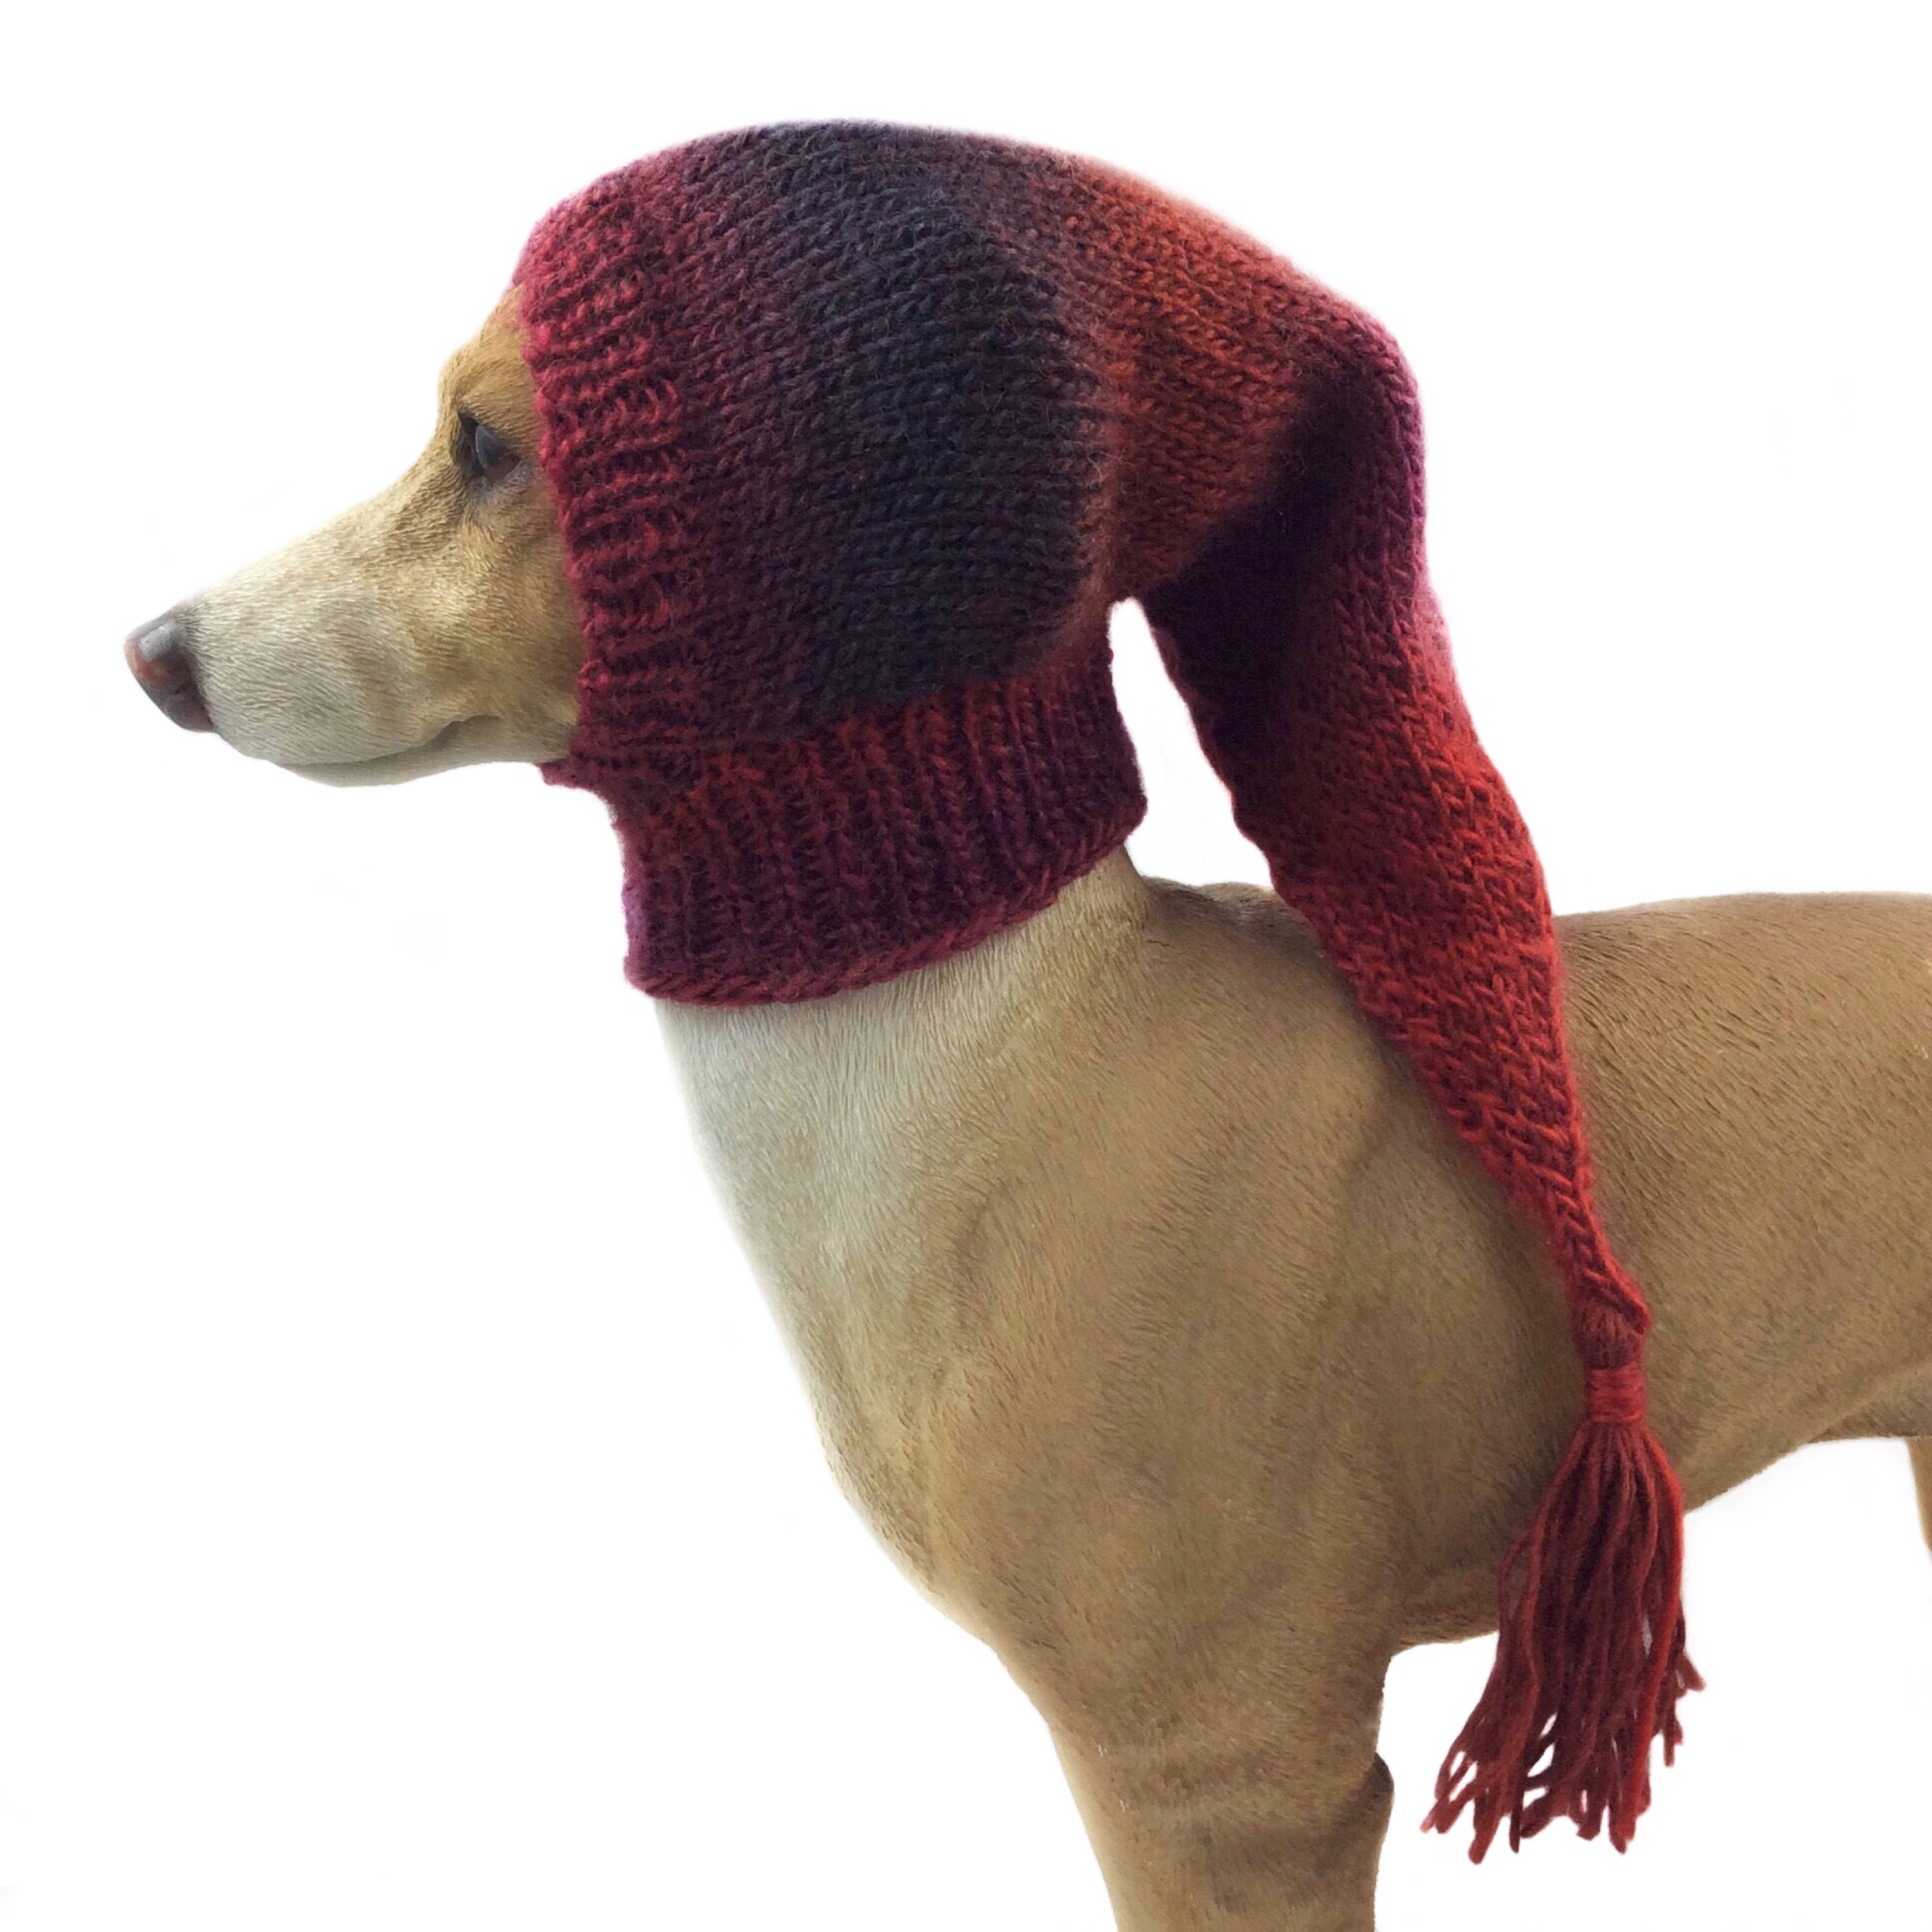 Greyhound knitted hat pattern yaasfo for reds small whippet snood dog hat italian greyhound greyhound knitted hat pattern bankloansurffo Images